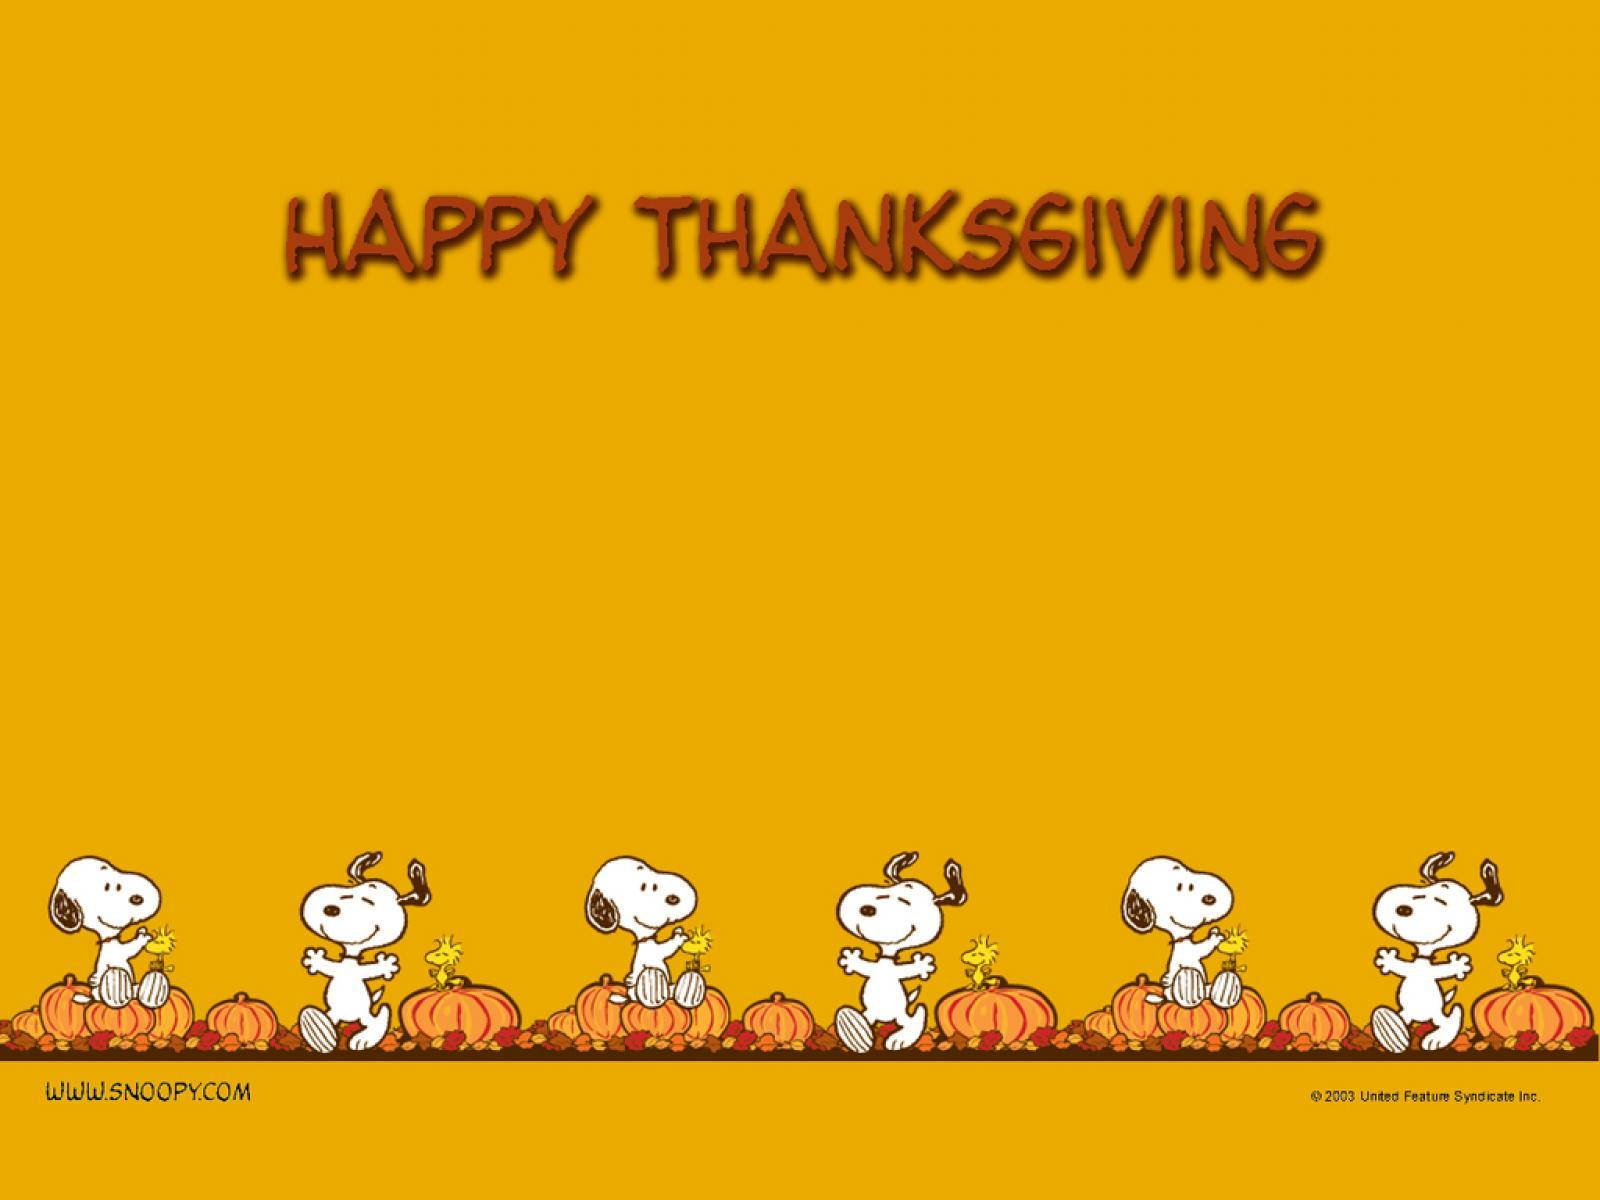 Thanksgiving Wallpaper Backgrounds HD Full